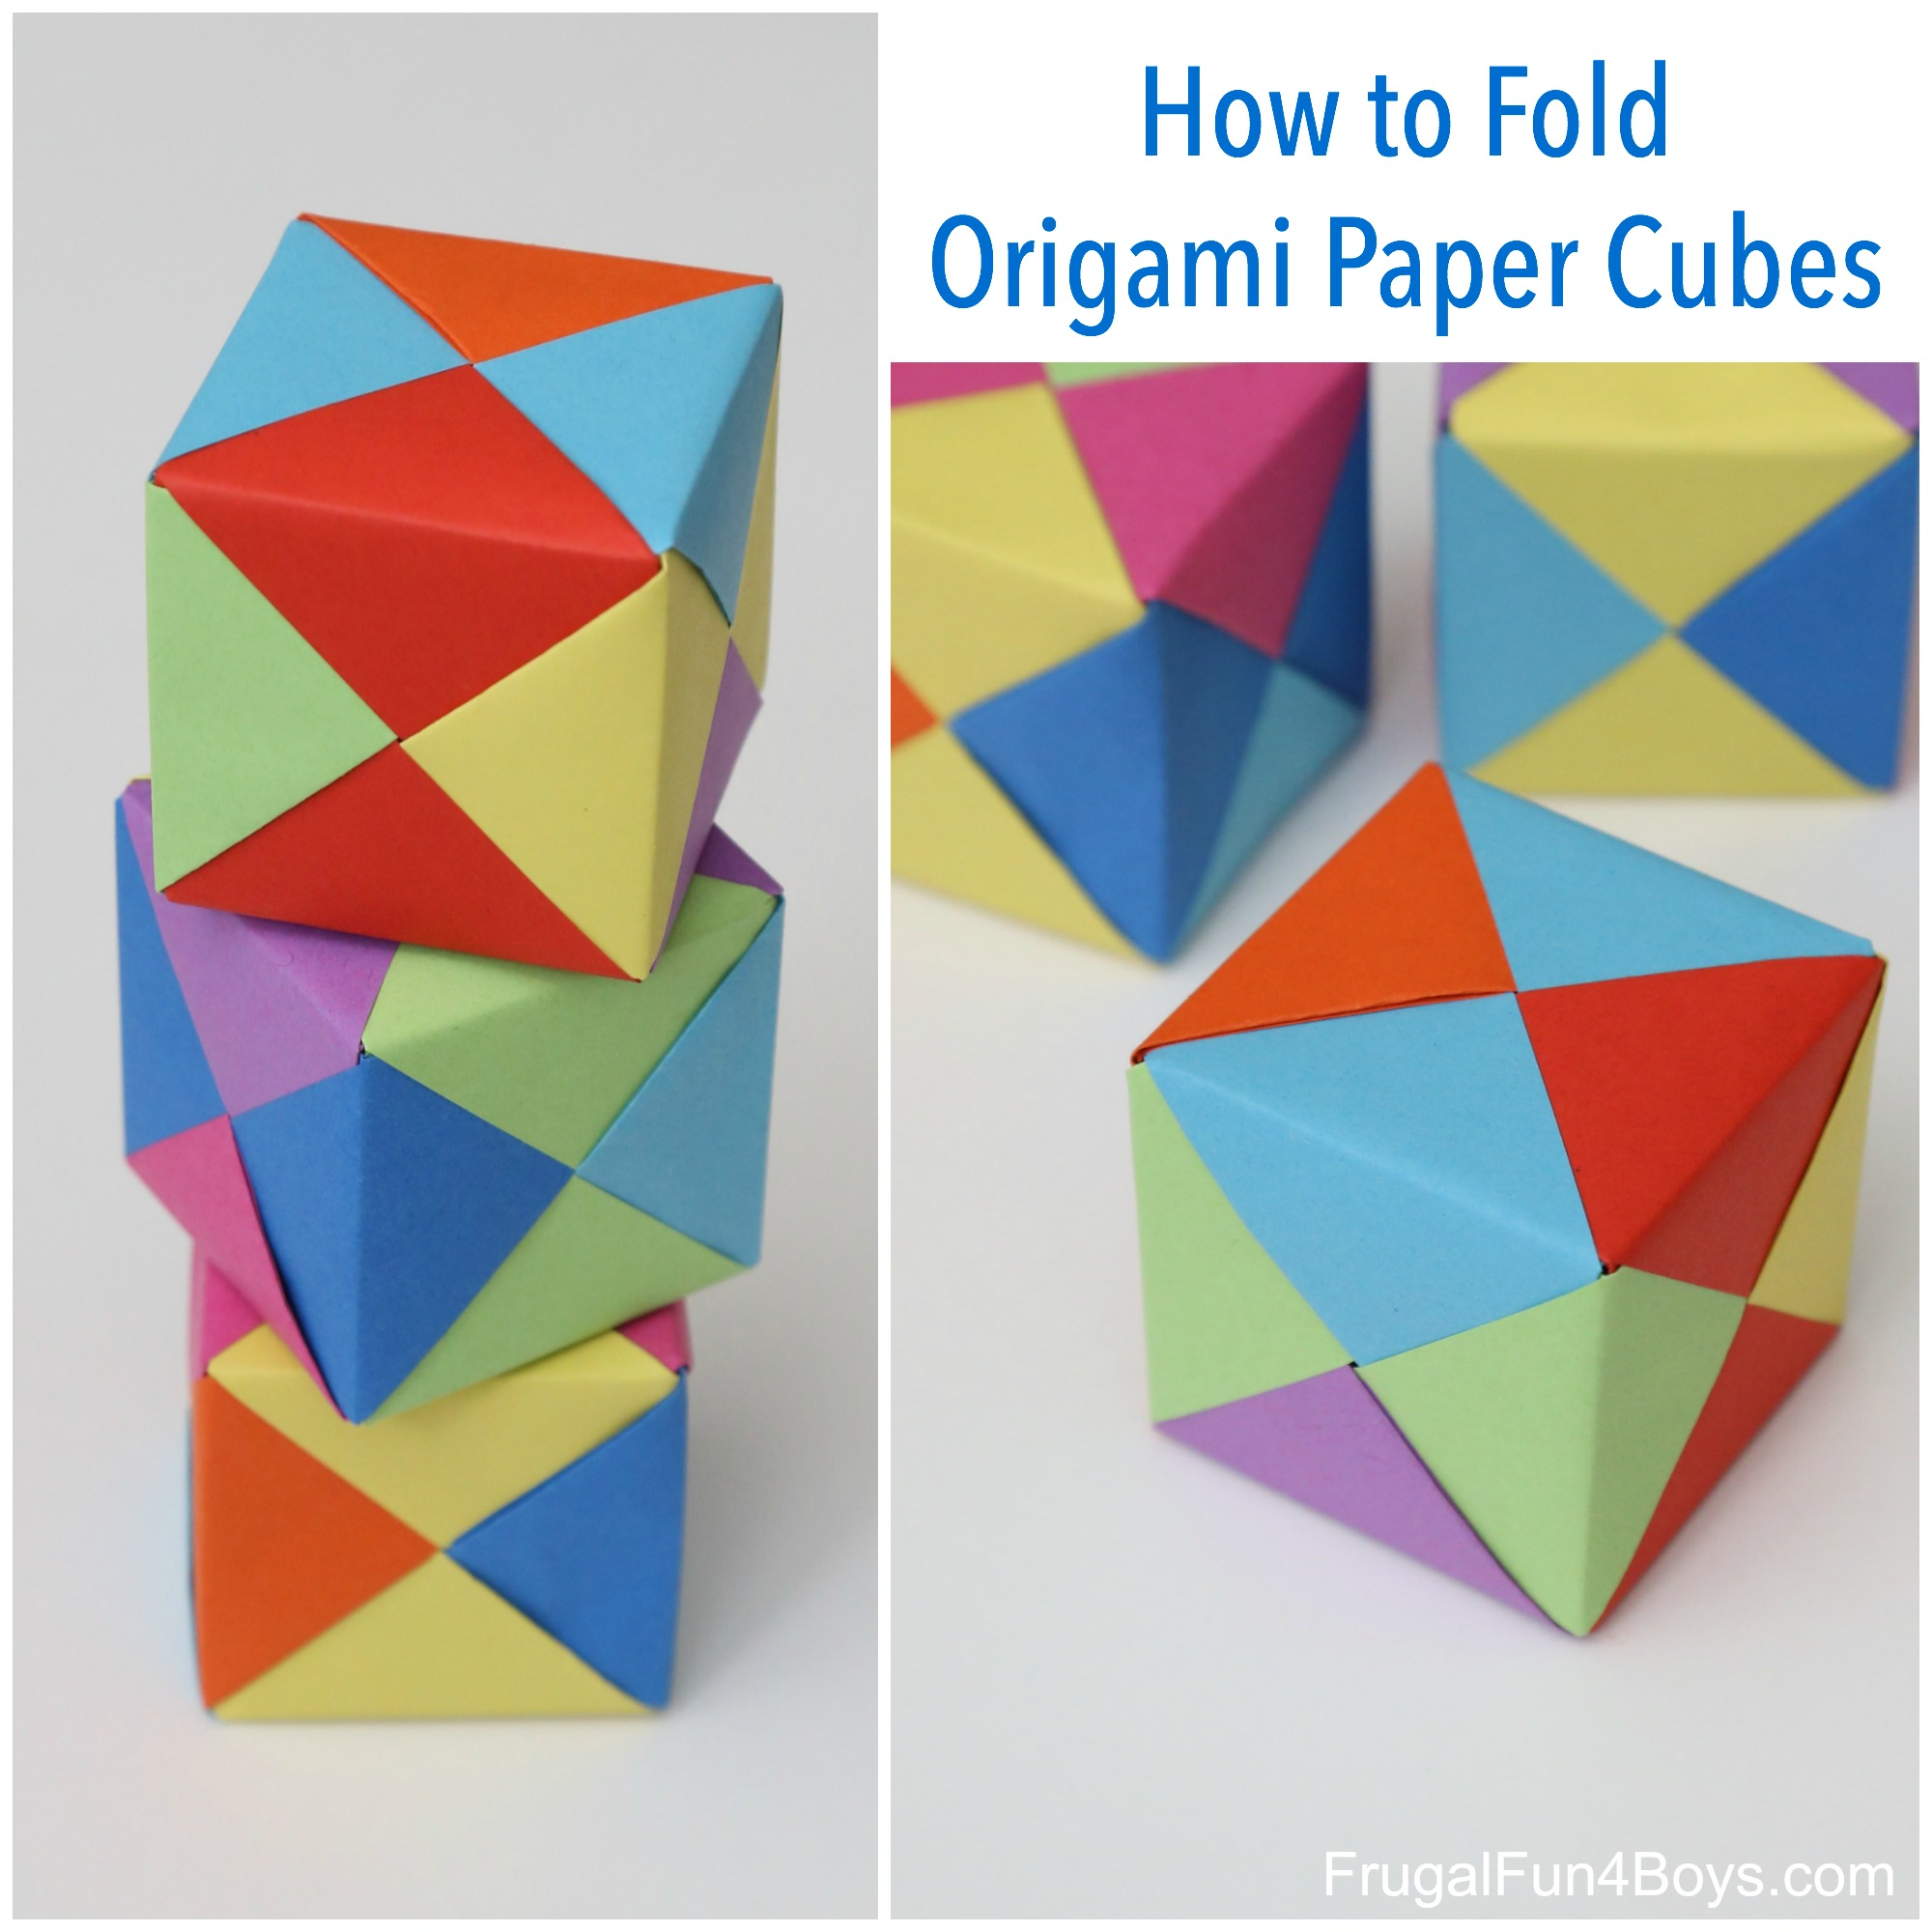 How to Fold Origami Paper Cubes - photo#15